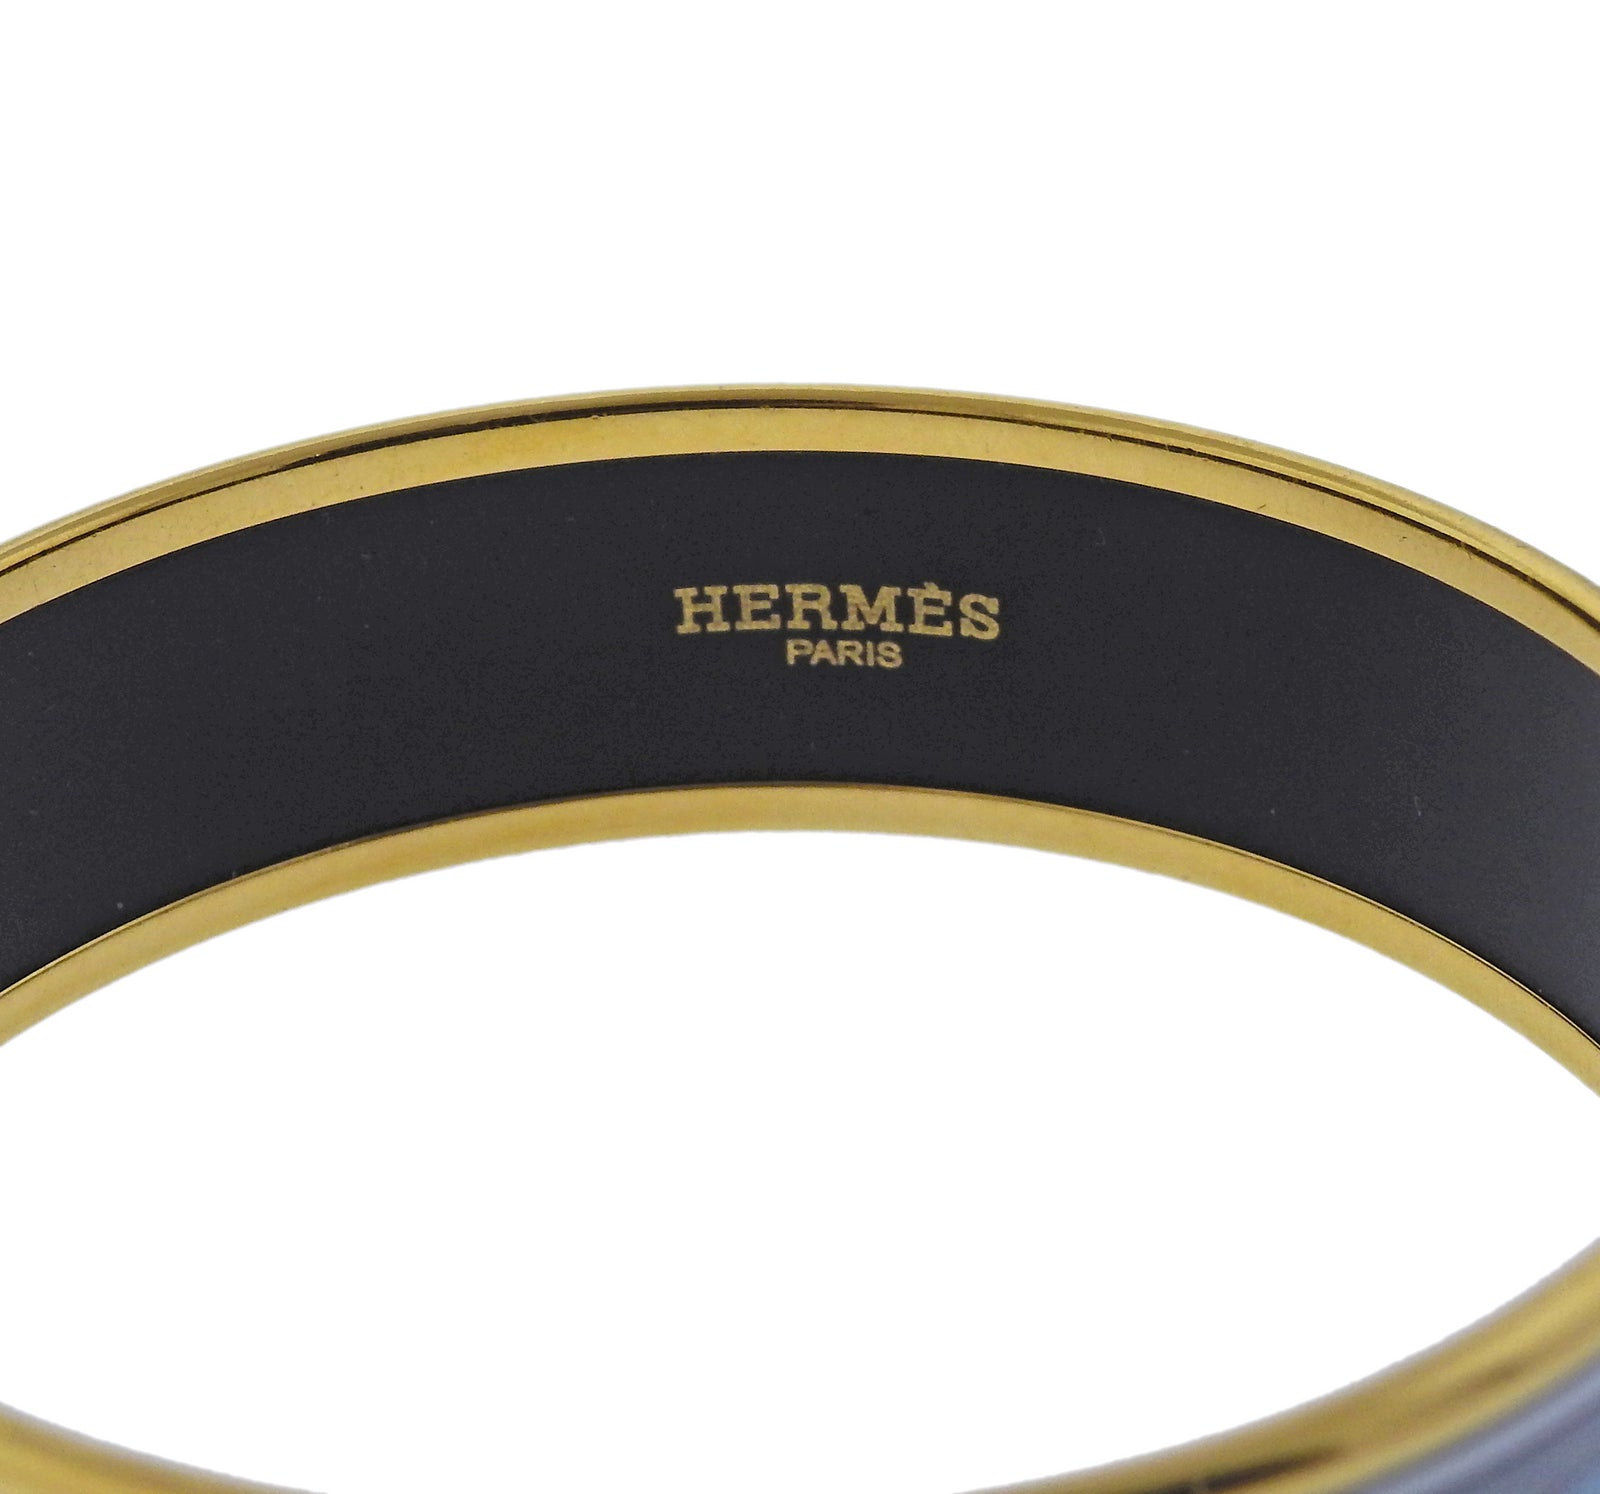 enamel herm bangles the bracelet clac new clic creations women meet s and for fashion h us front en jewelry